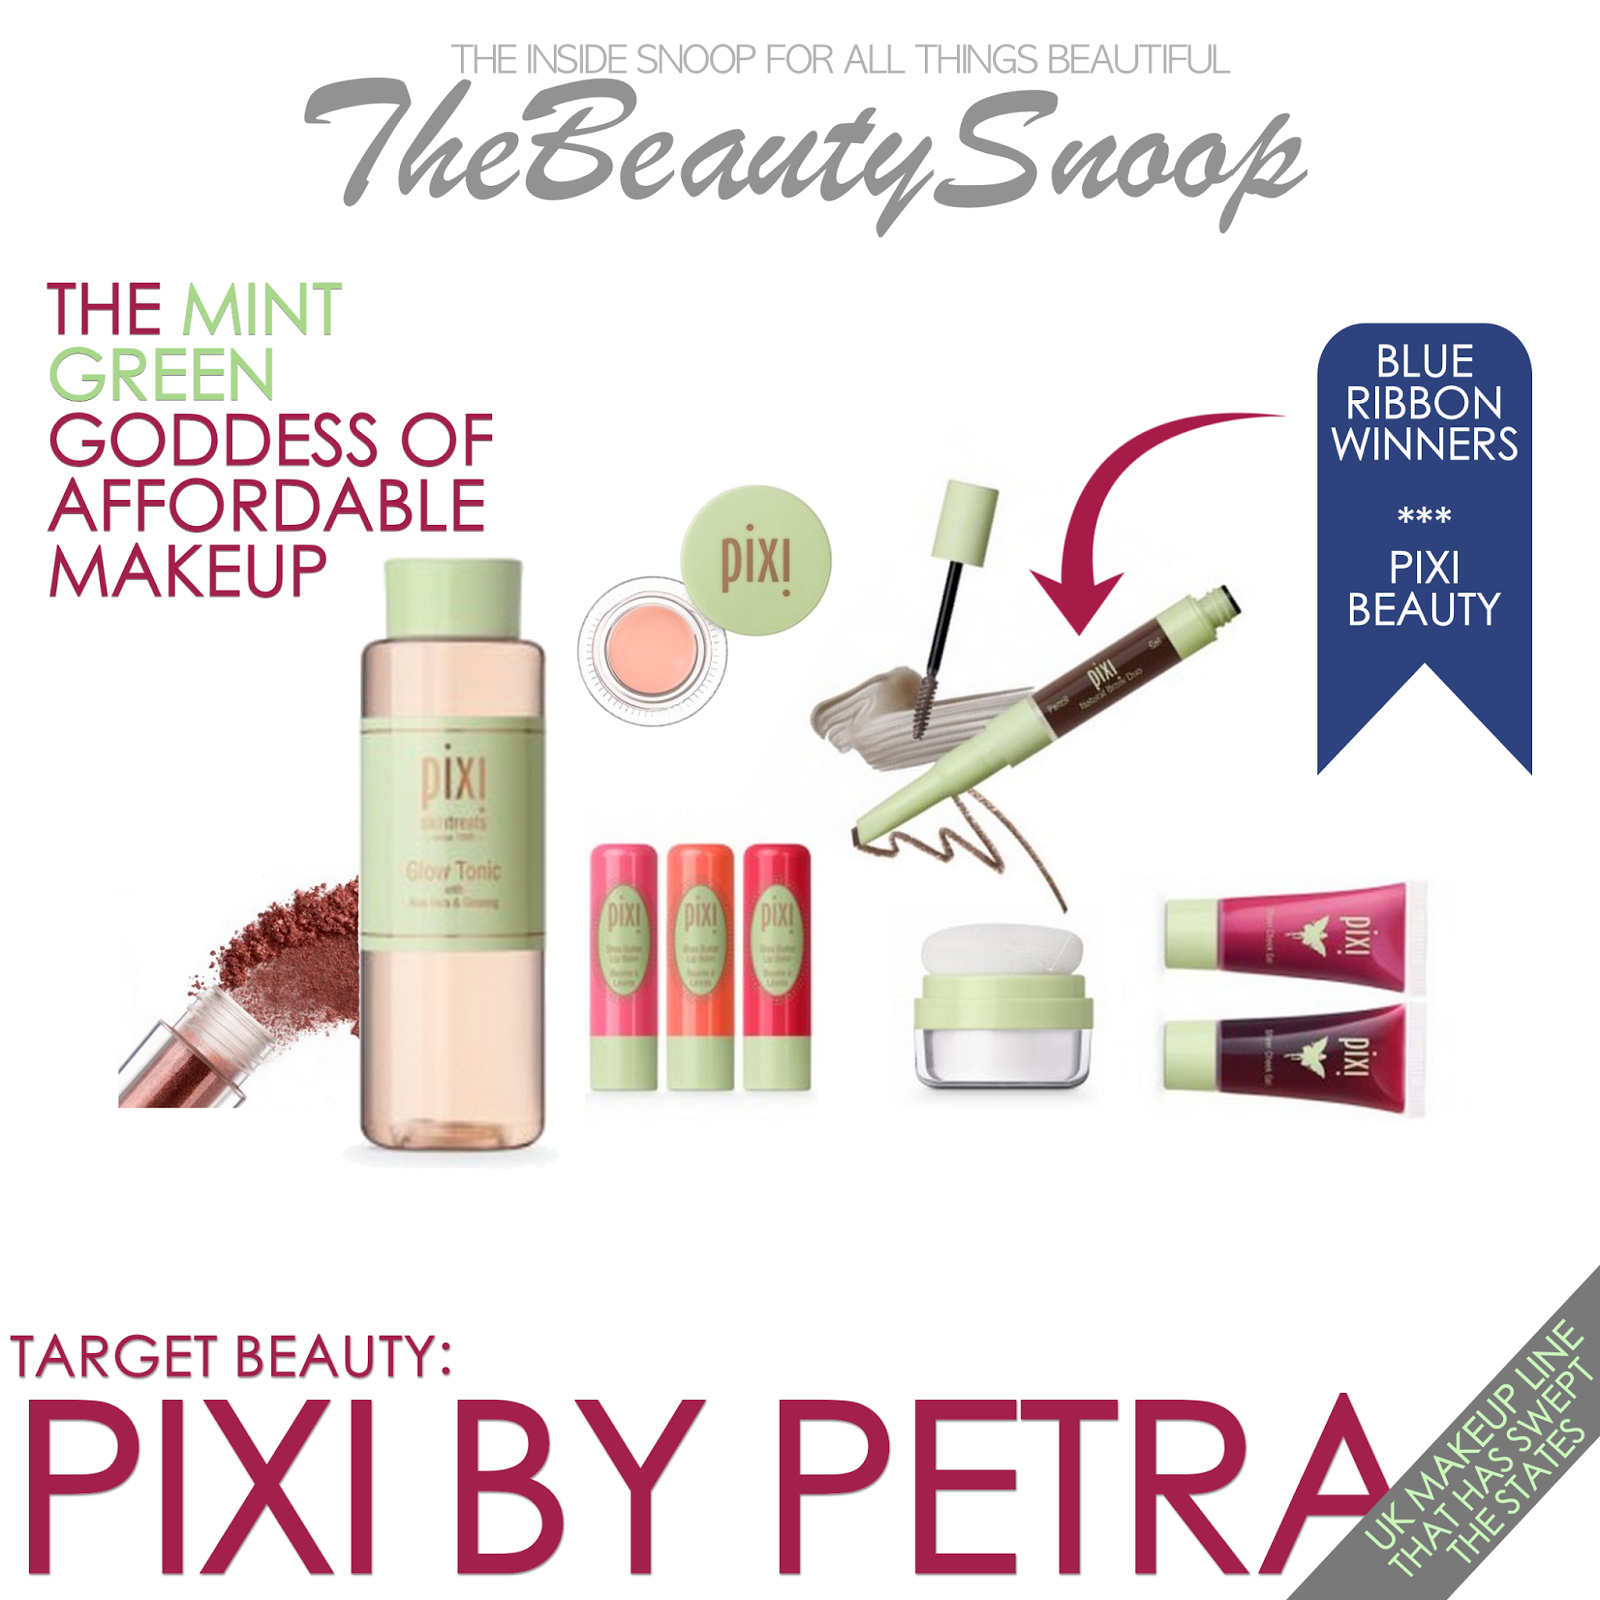 Pixi makeup at target, the best of Pixi Beauty, Pixi by Petra review, UK makeup brands available in the US, best UK makeup, affordable makeup, budget makeup, target makeup brands